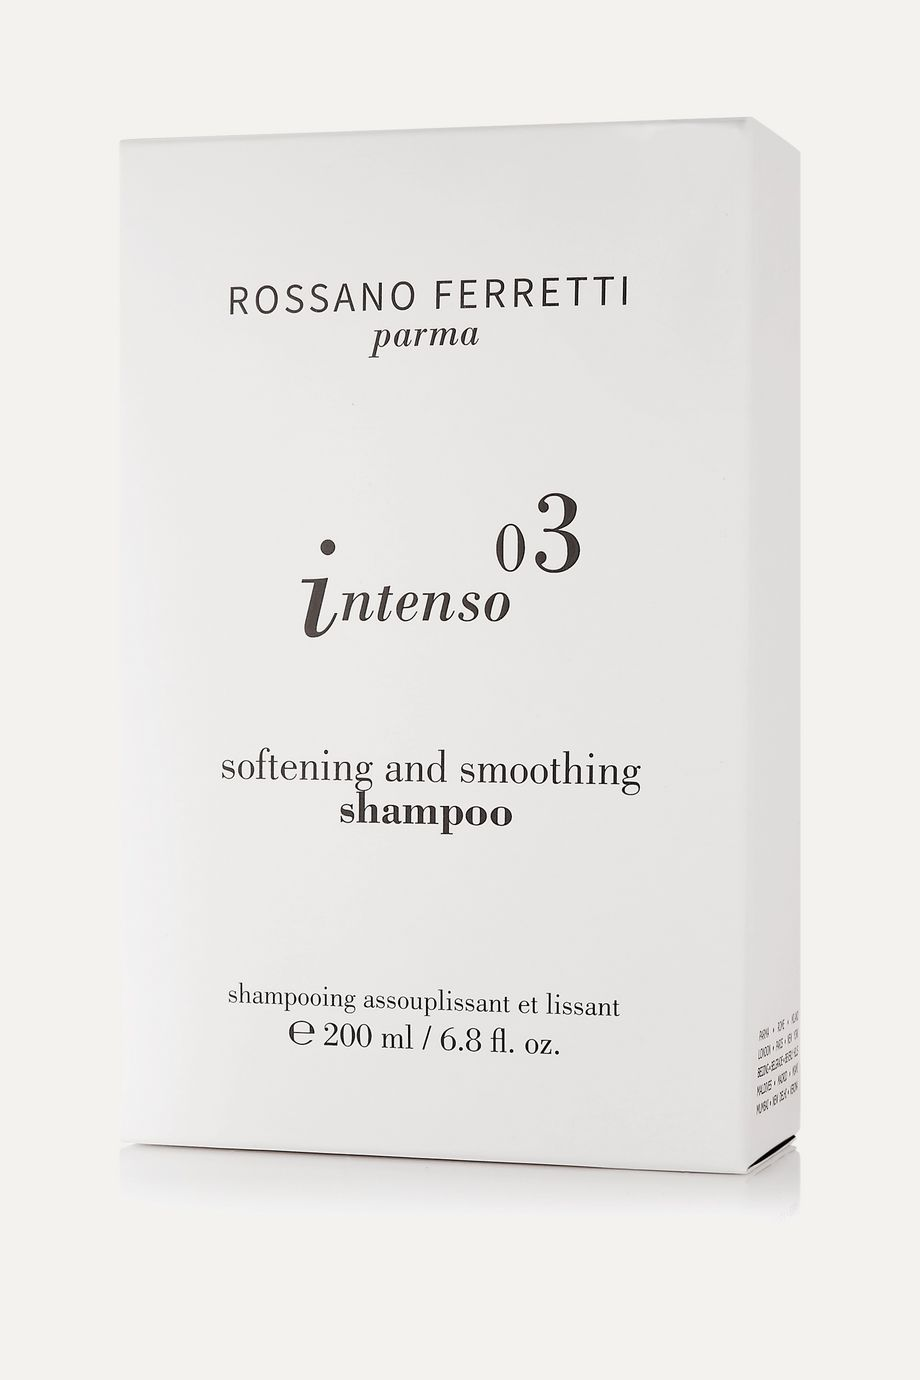 ROSSANO FERRETTI Parma Intenso Softening and Smoothing Shampoo, 200ml